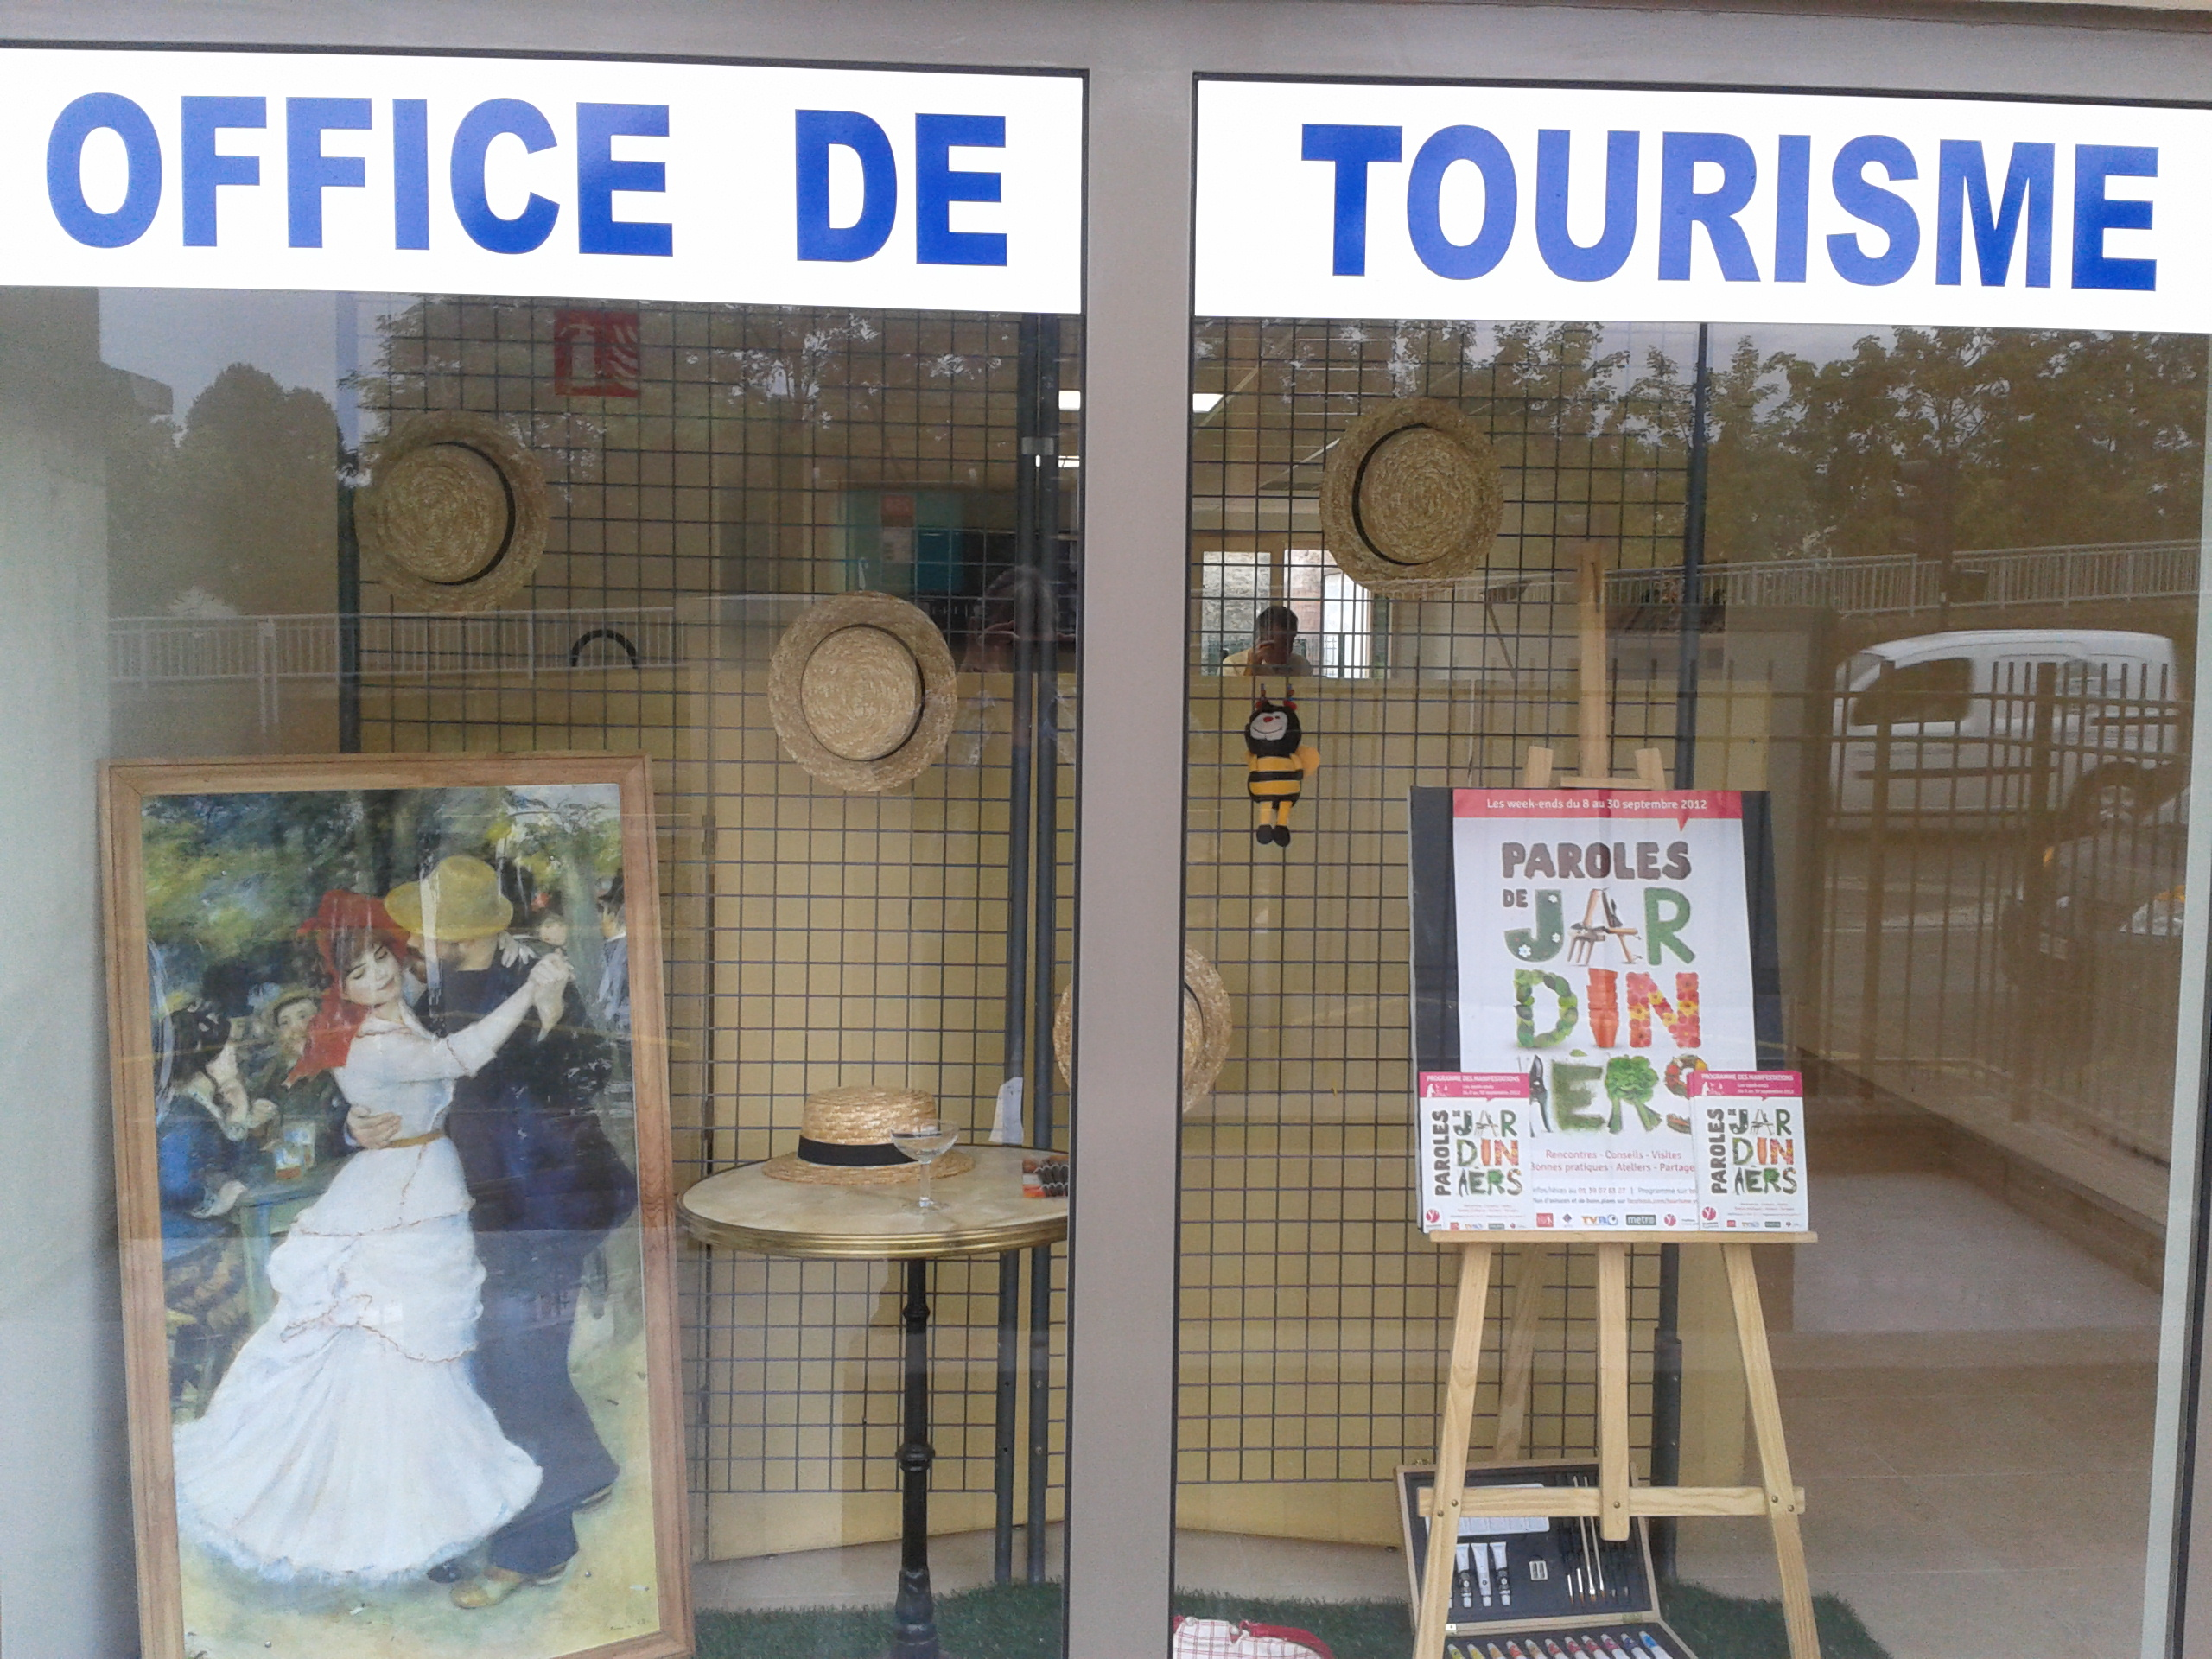 Bougivalaccueil de l 39 office de tourisme de bougival bougival for Office tourisme yvelines